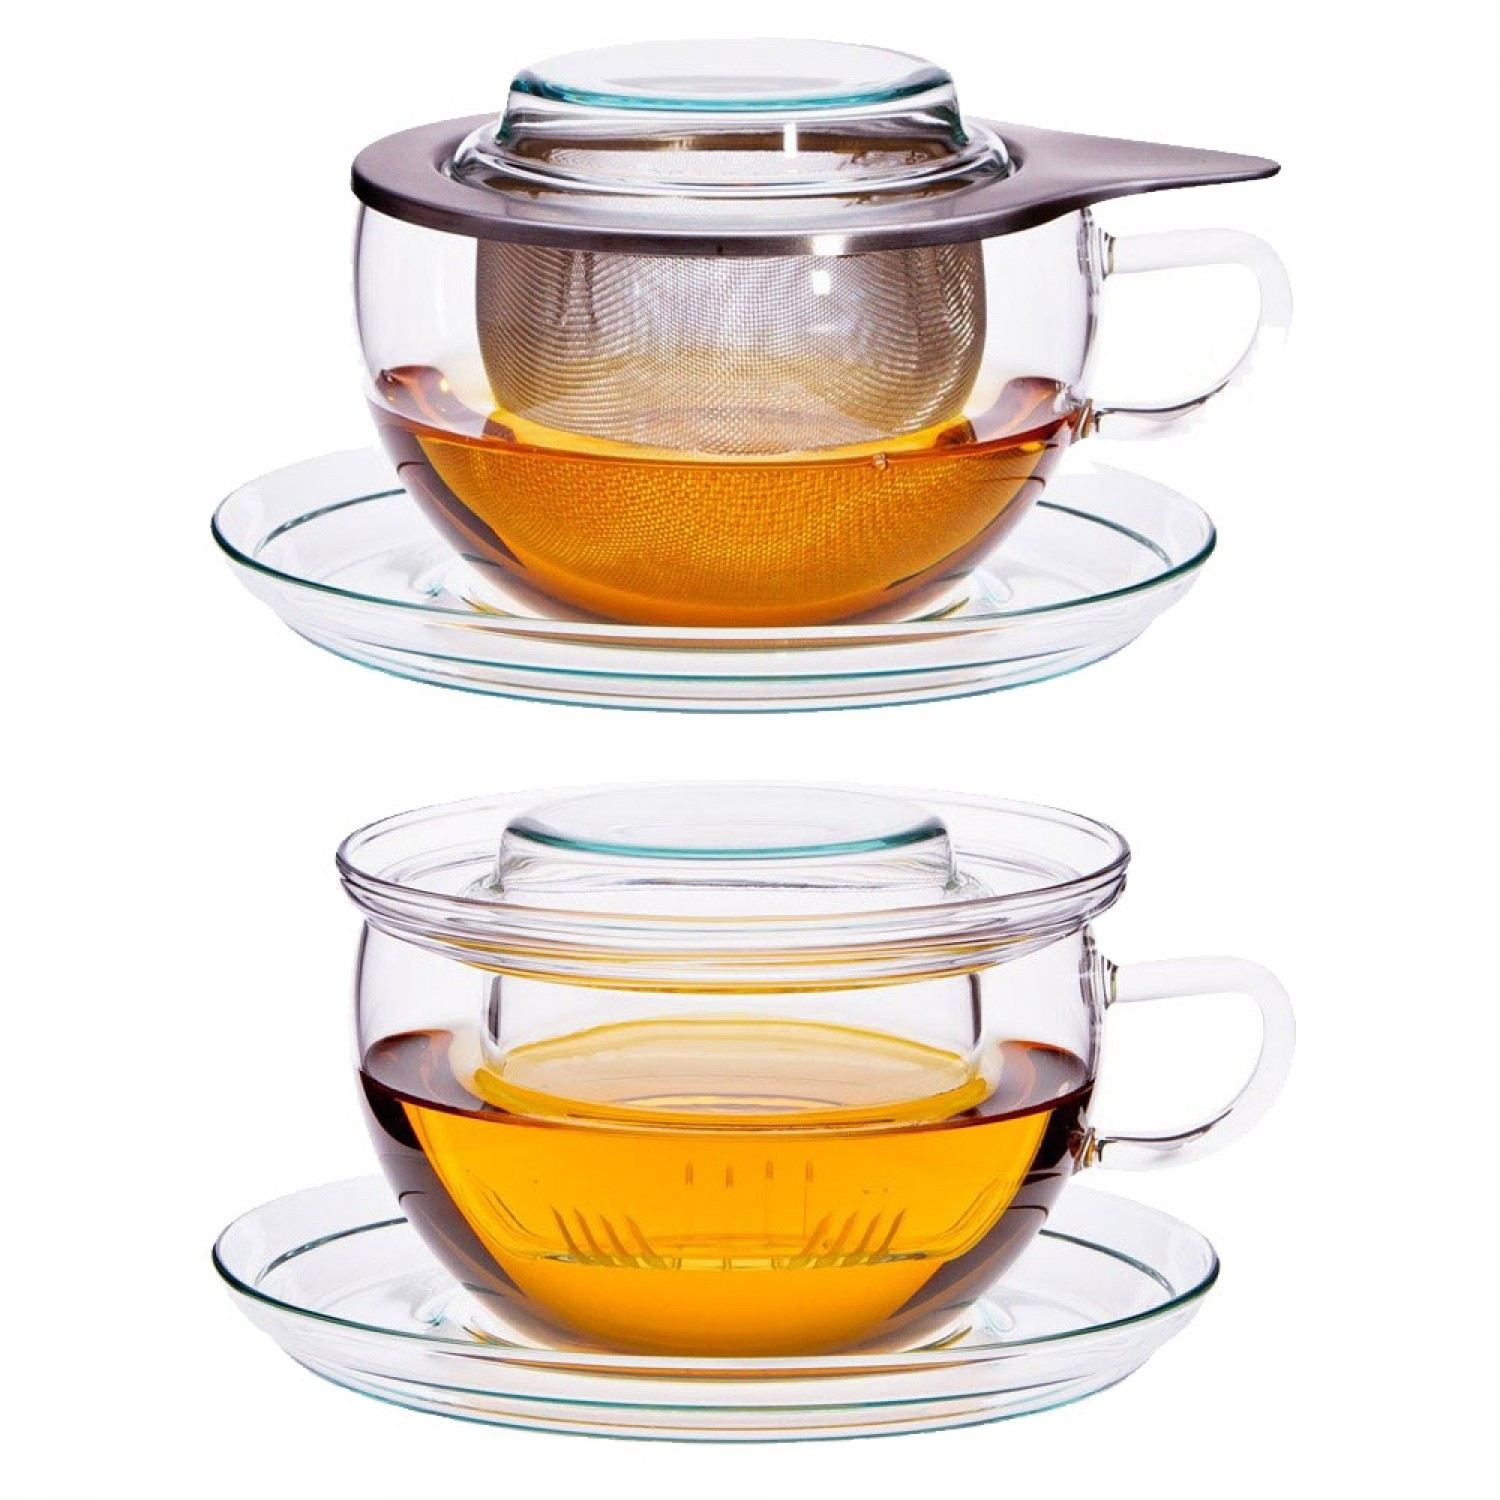 Teacup TEA TIME 0.4 l - stainless steel or glass strainer - Trendglas Jena